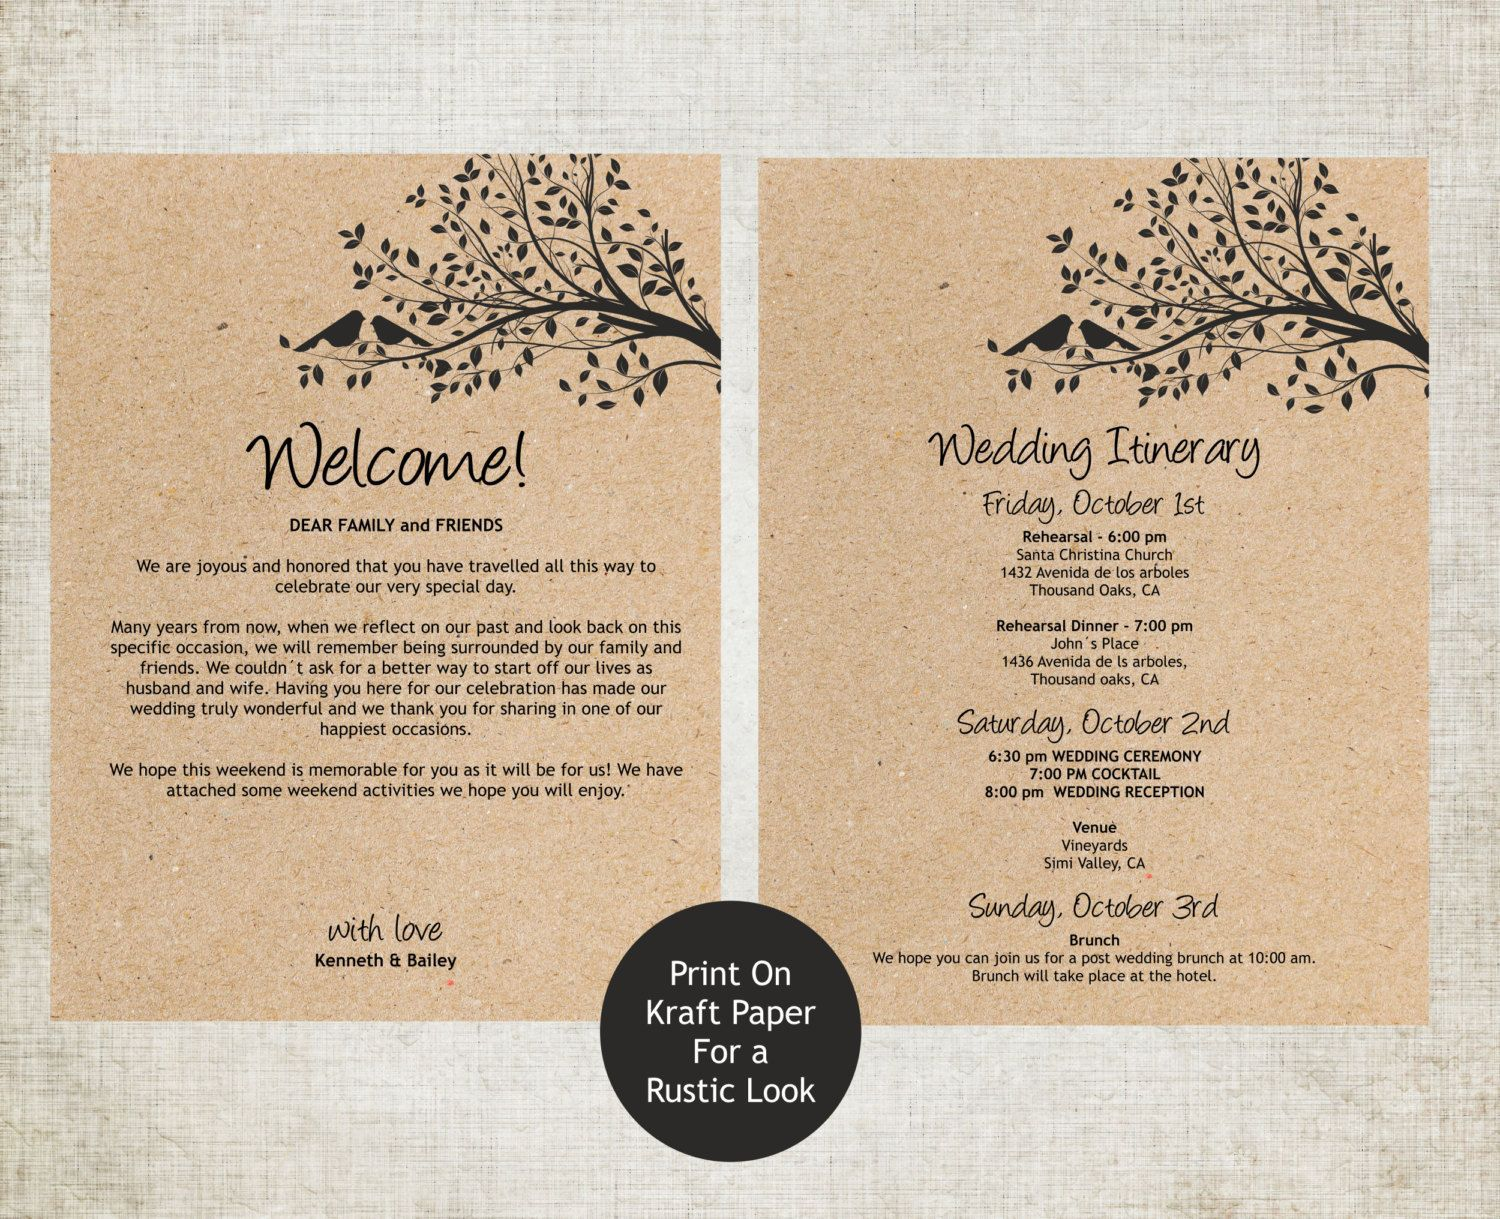 007 Awful Cruise Wedding Welcome Letter Template Concept Full